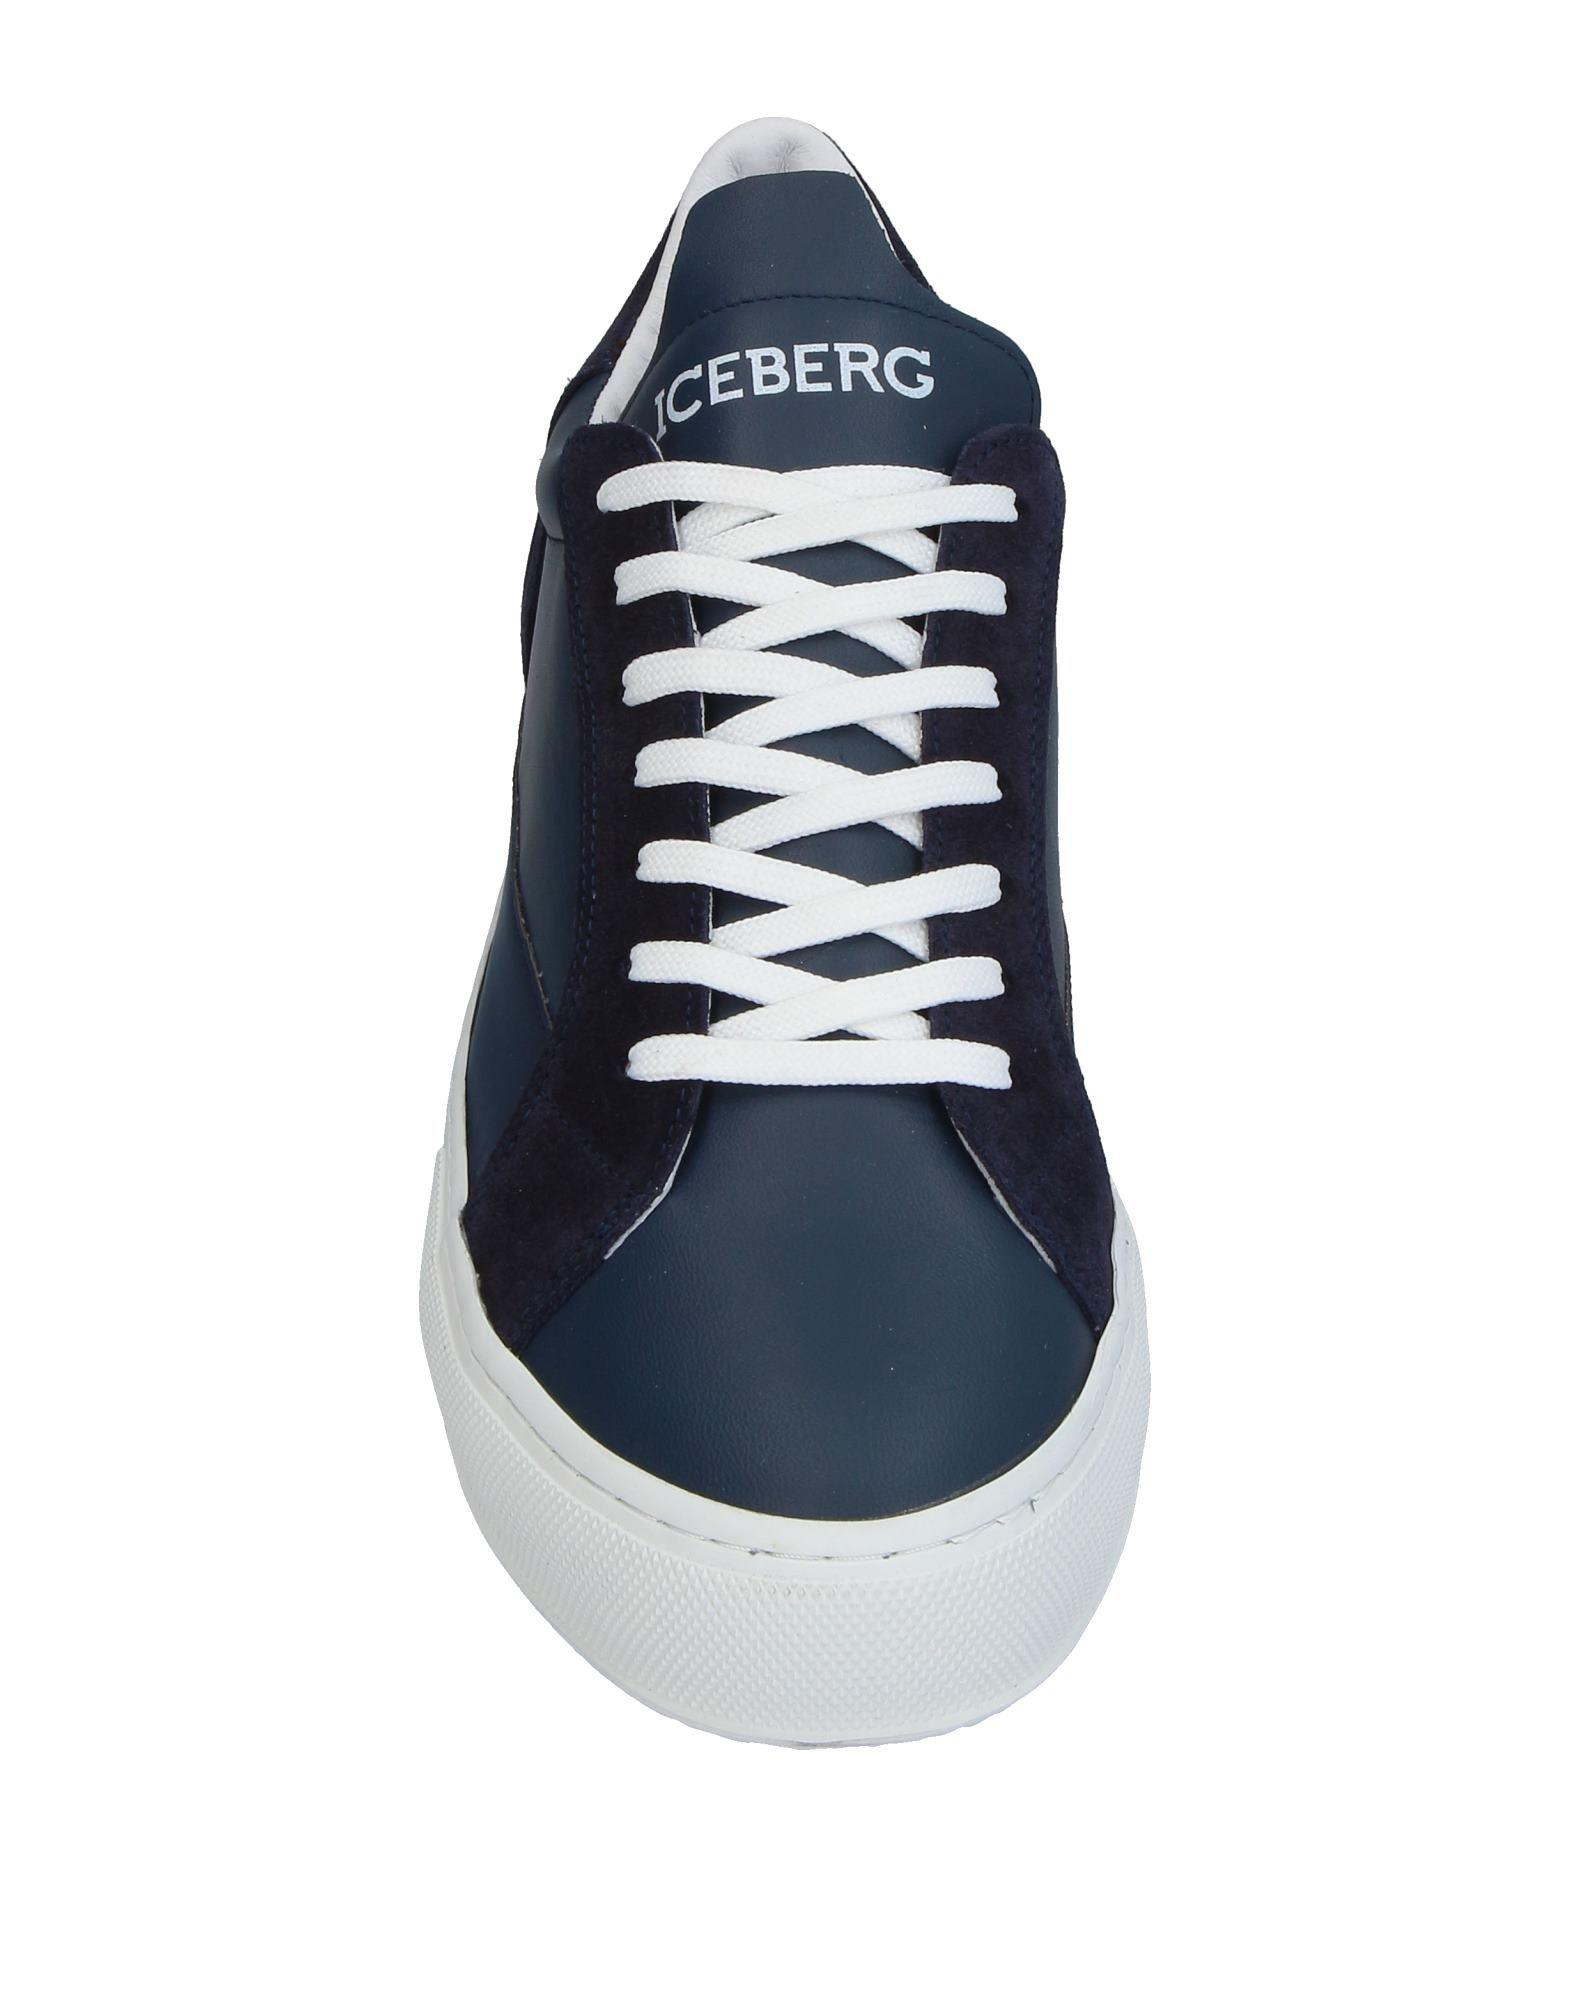 FOOTWEAR - Low-tops & sneakers Iceberg 2018 Newest 0b49aDr